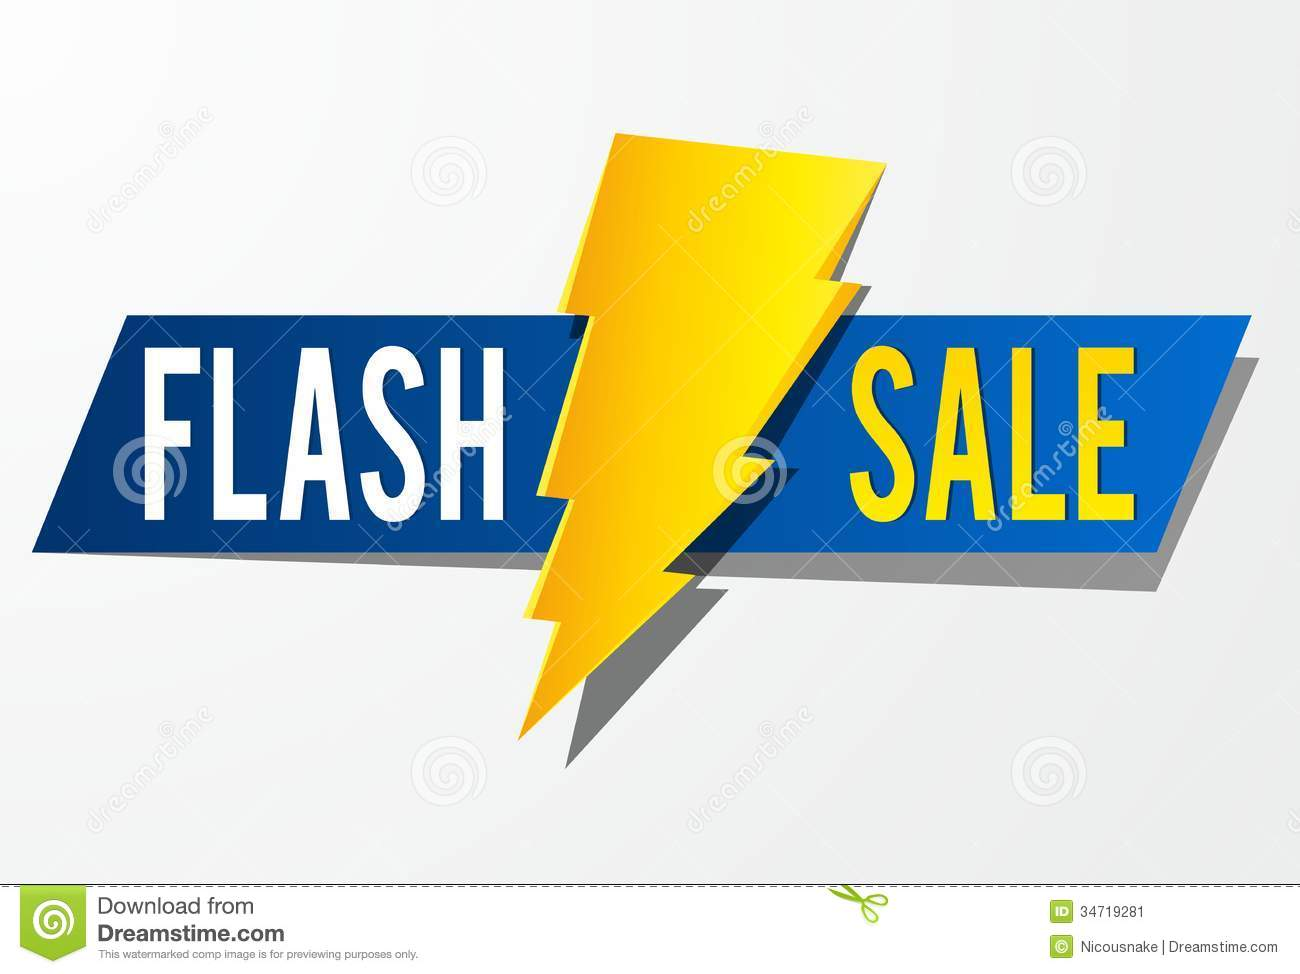 Flash Sale Stock Image - Image: 34719281